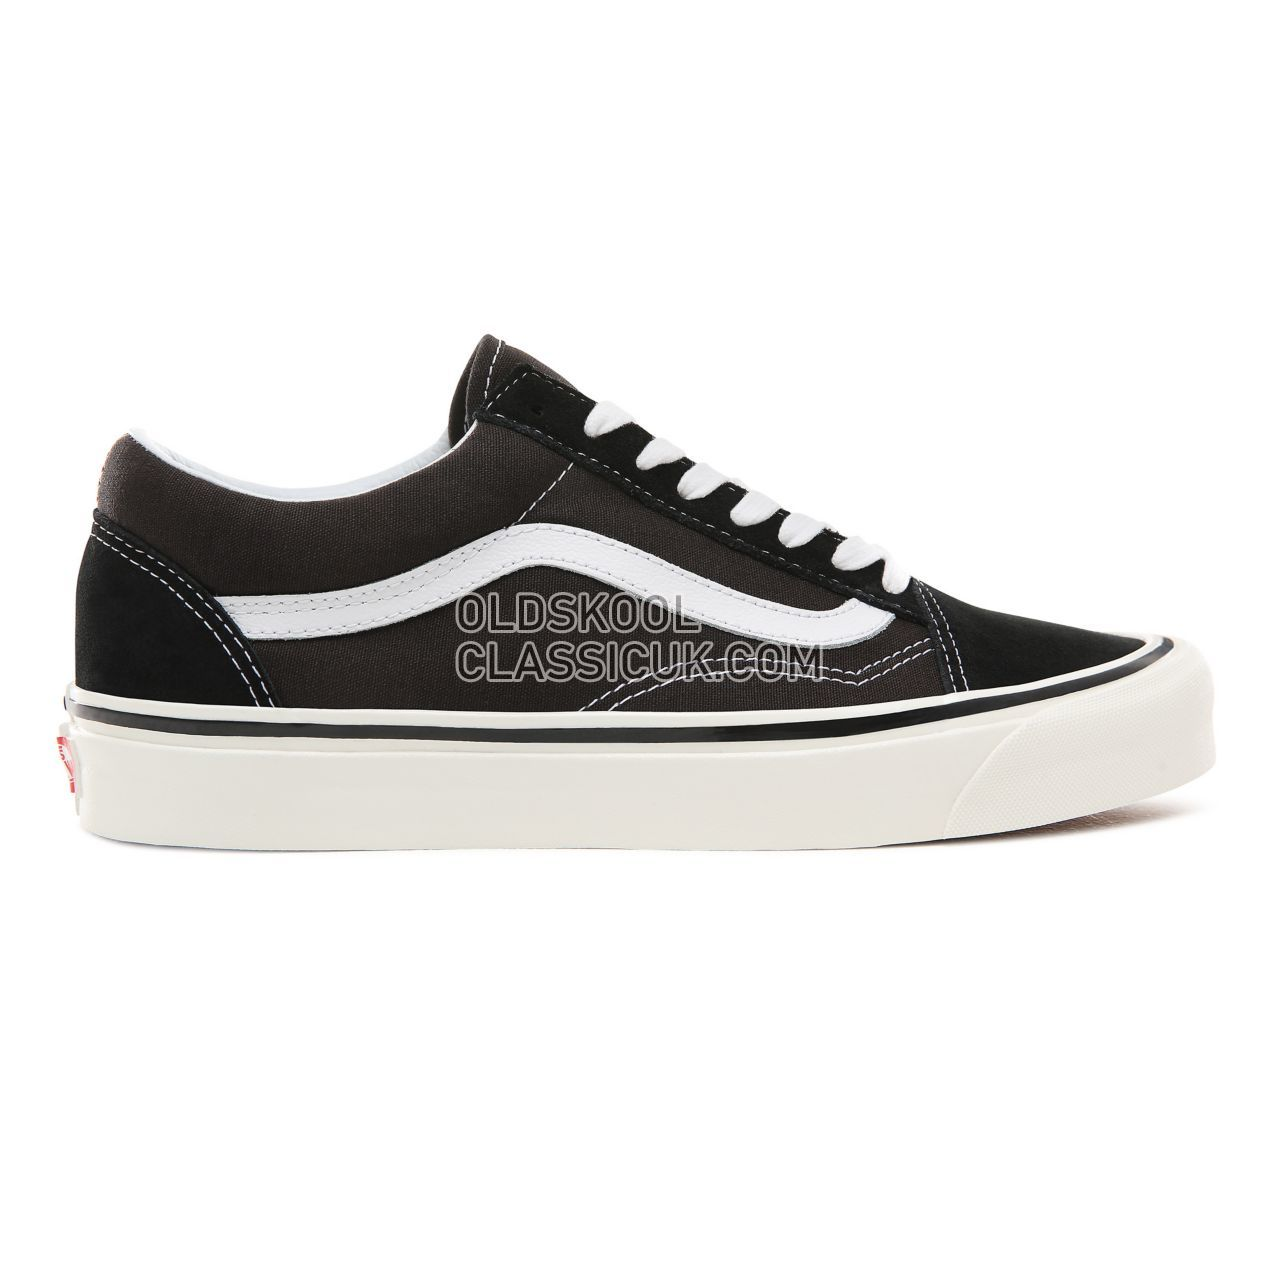 Vans Anaheim Factory Old Skool 36 DX Sneakers Mens Womens Unisex (Anaheim Factory) Black/True White VN0A38G2PXC Shoes